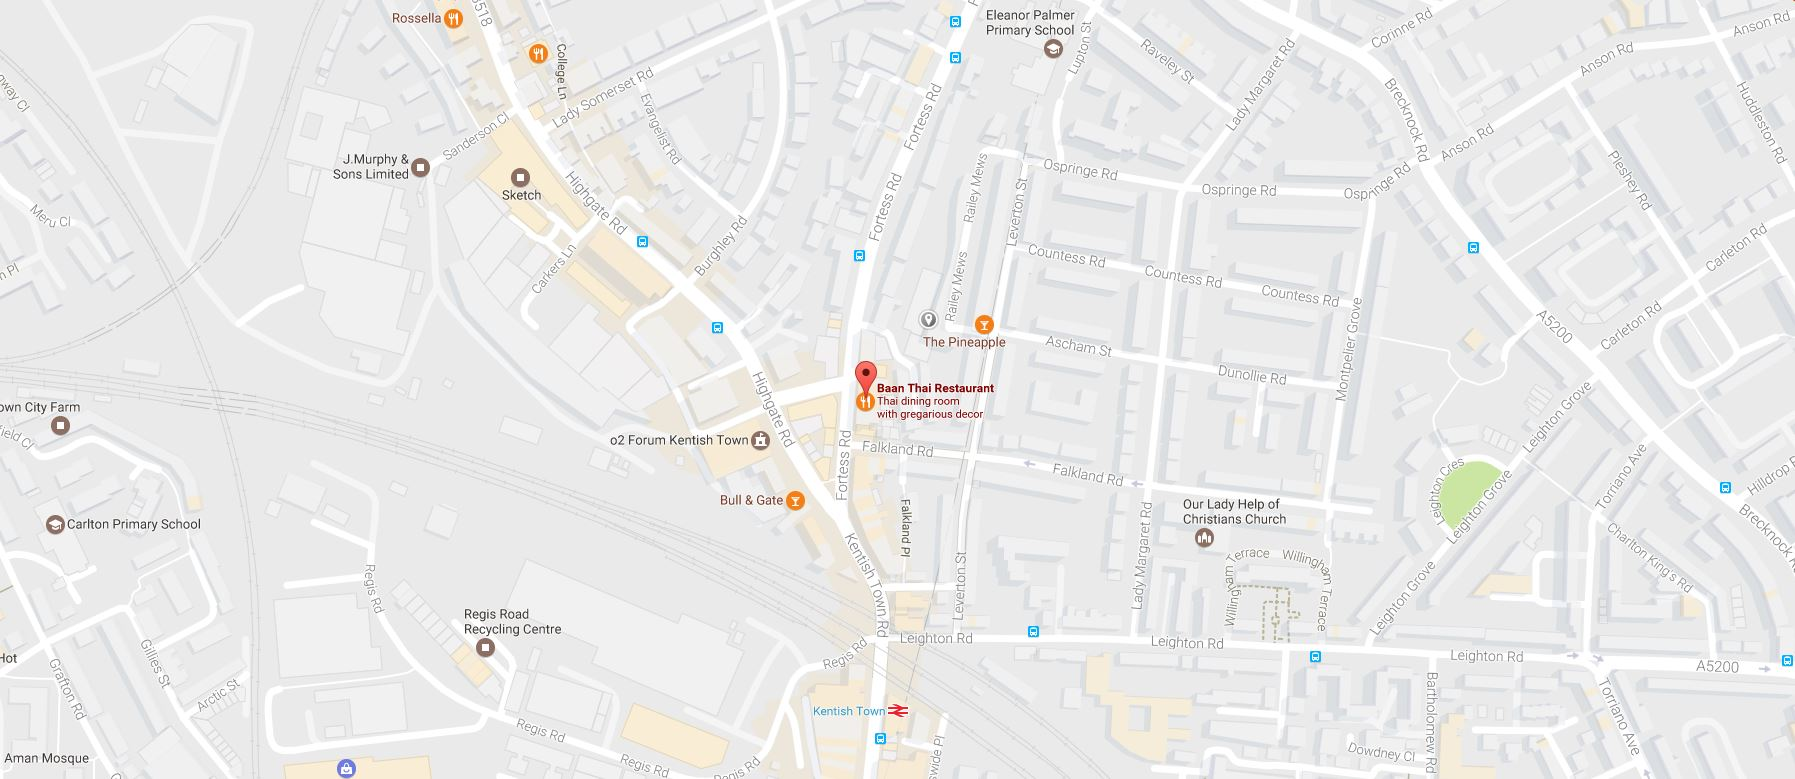 Thai Restaurant Holloway Road